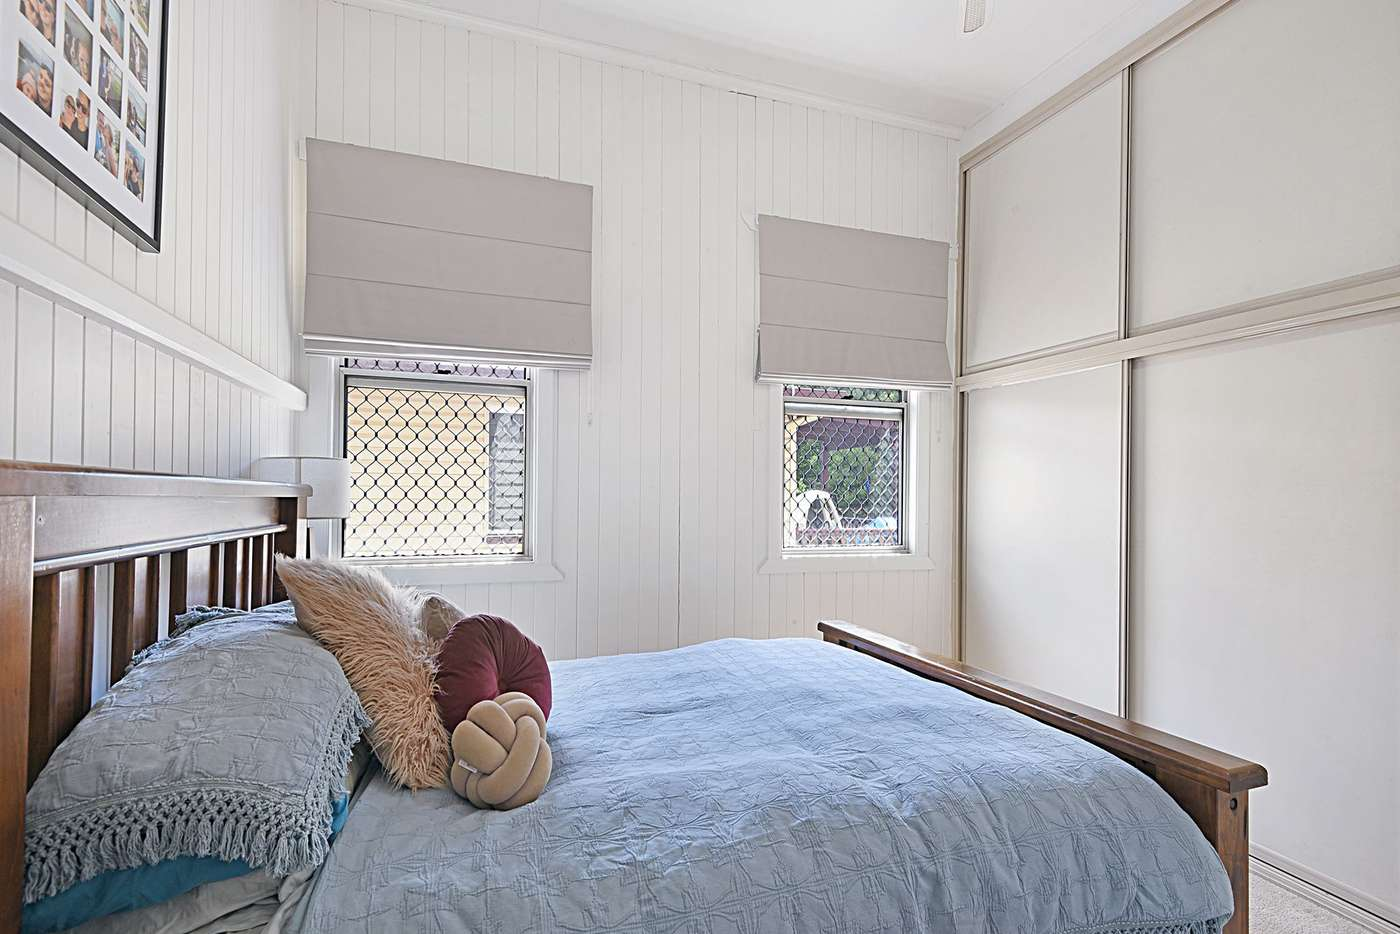 Fifth view of Homely house listing, 47 Oquinn Street, Harristown QLD 4350